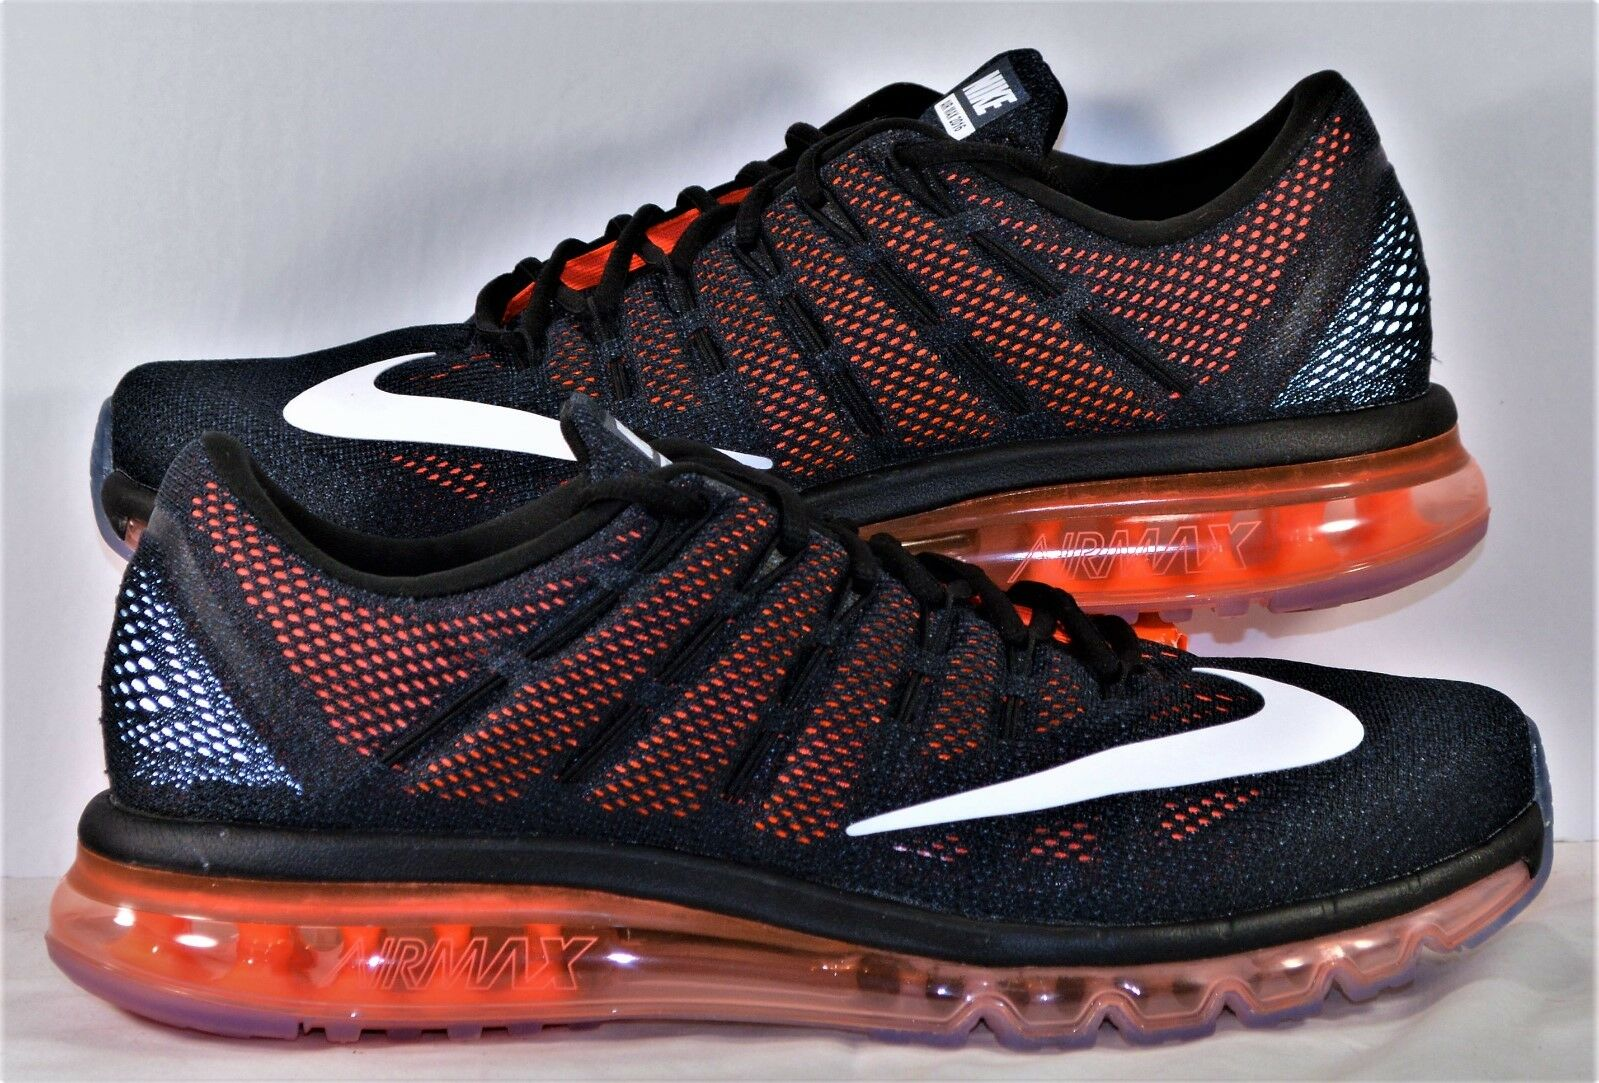 Nike Air Max 2016 Black & Shoes White & Crimson Running Shoes & Sz 14 NEW 806771 008 52f36c